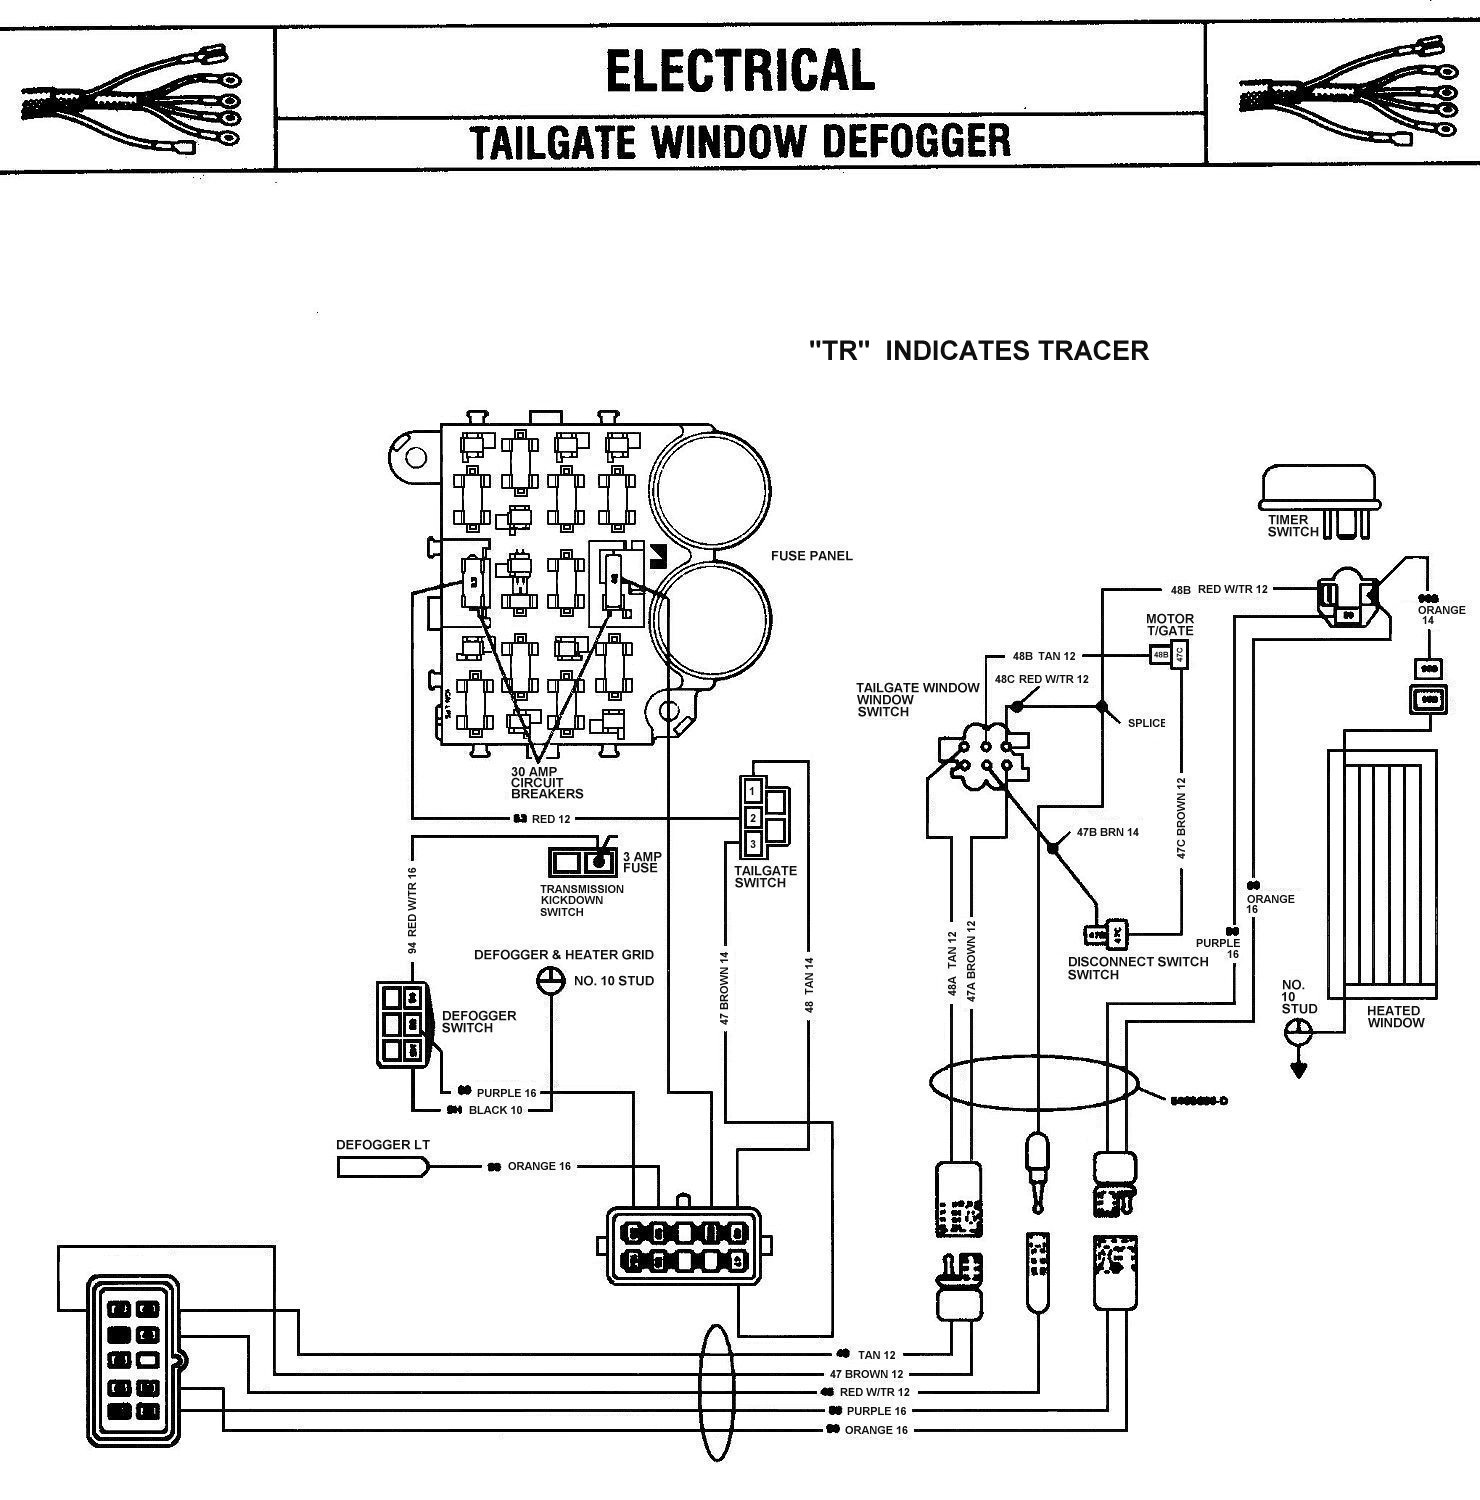 hight resolution of 1987 pontiac fiero gt wiring diagram